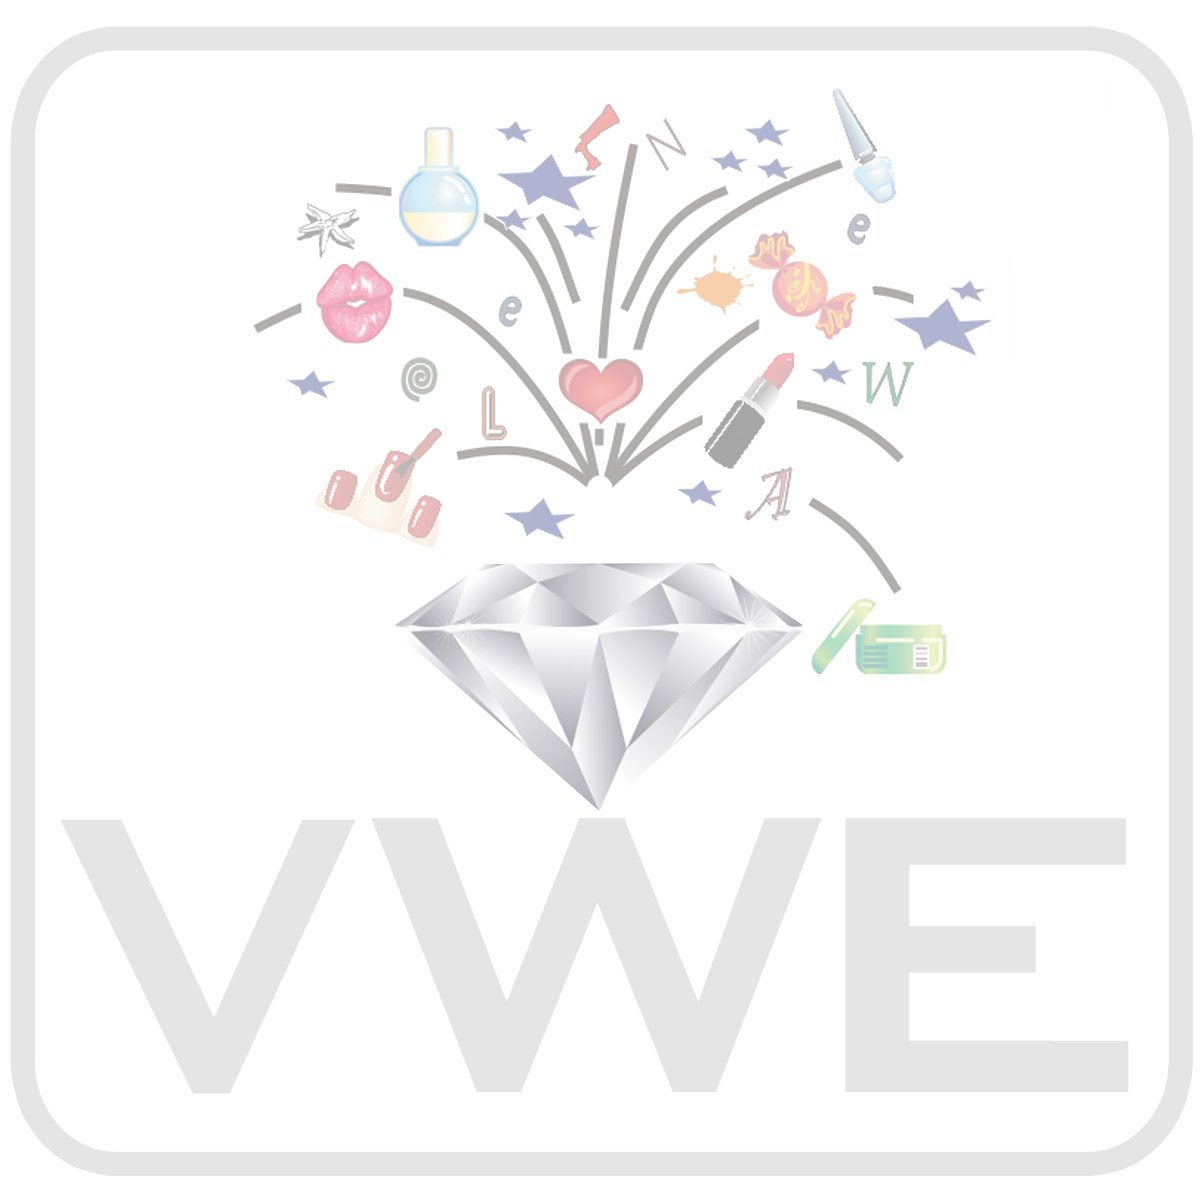 UV Gel Flux Profile